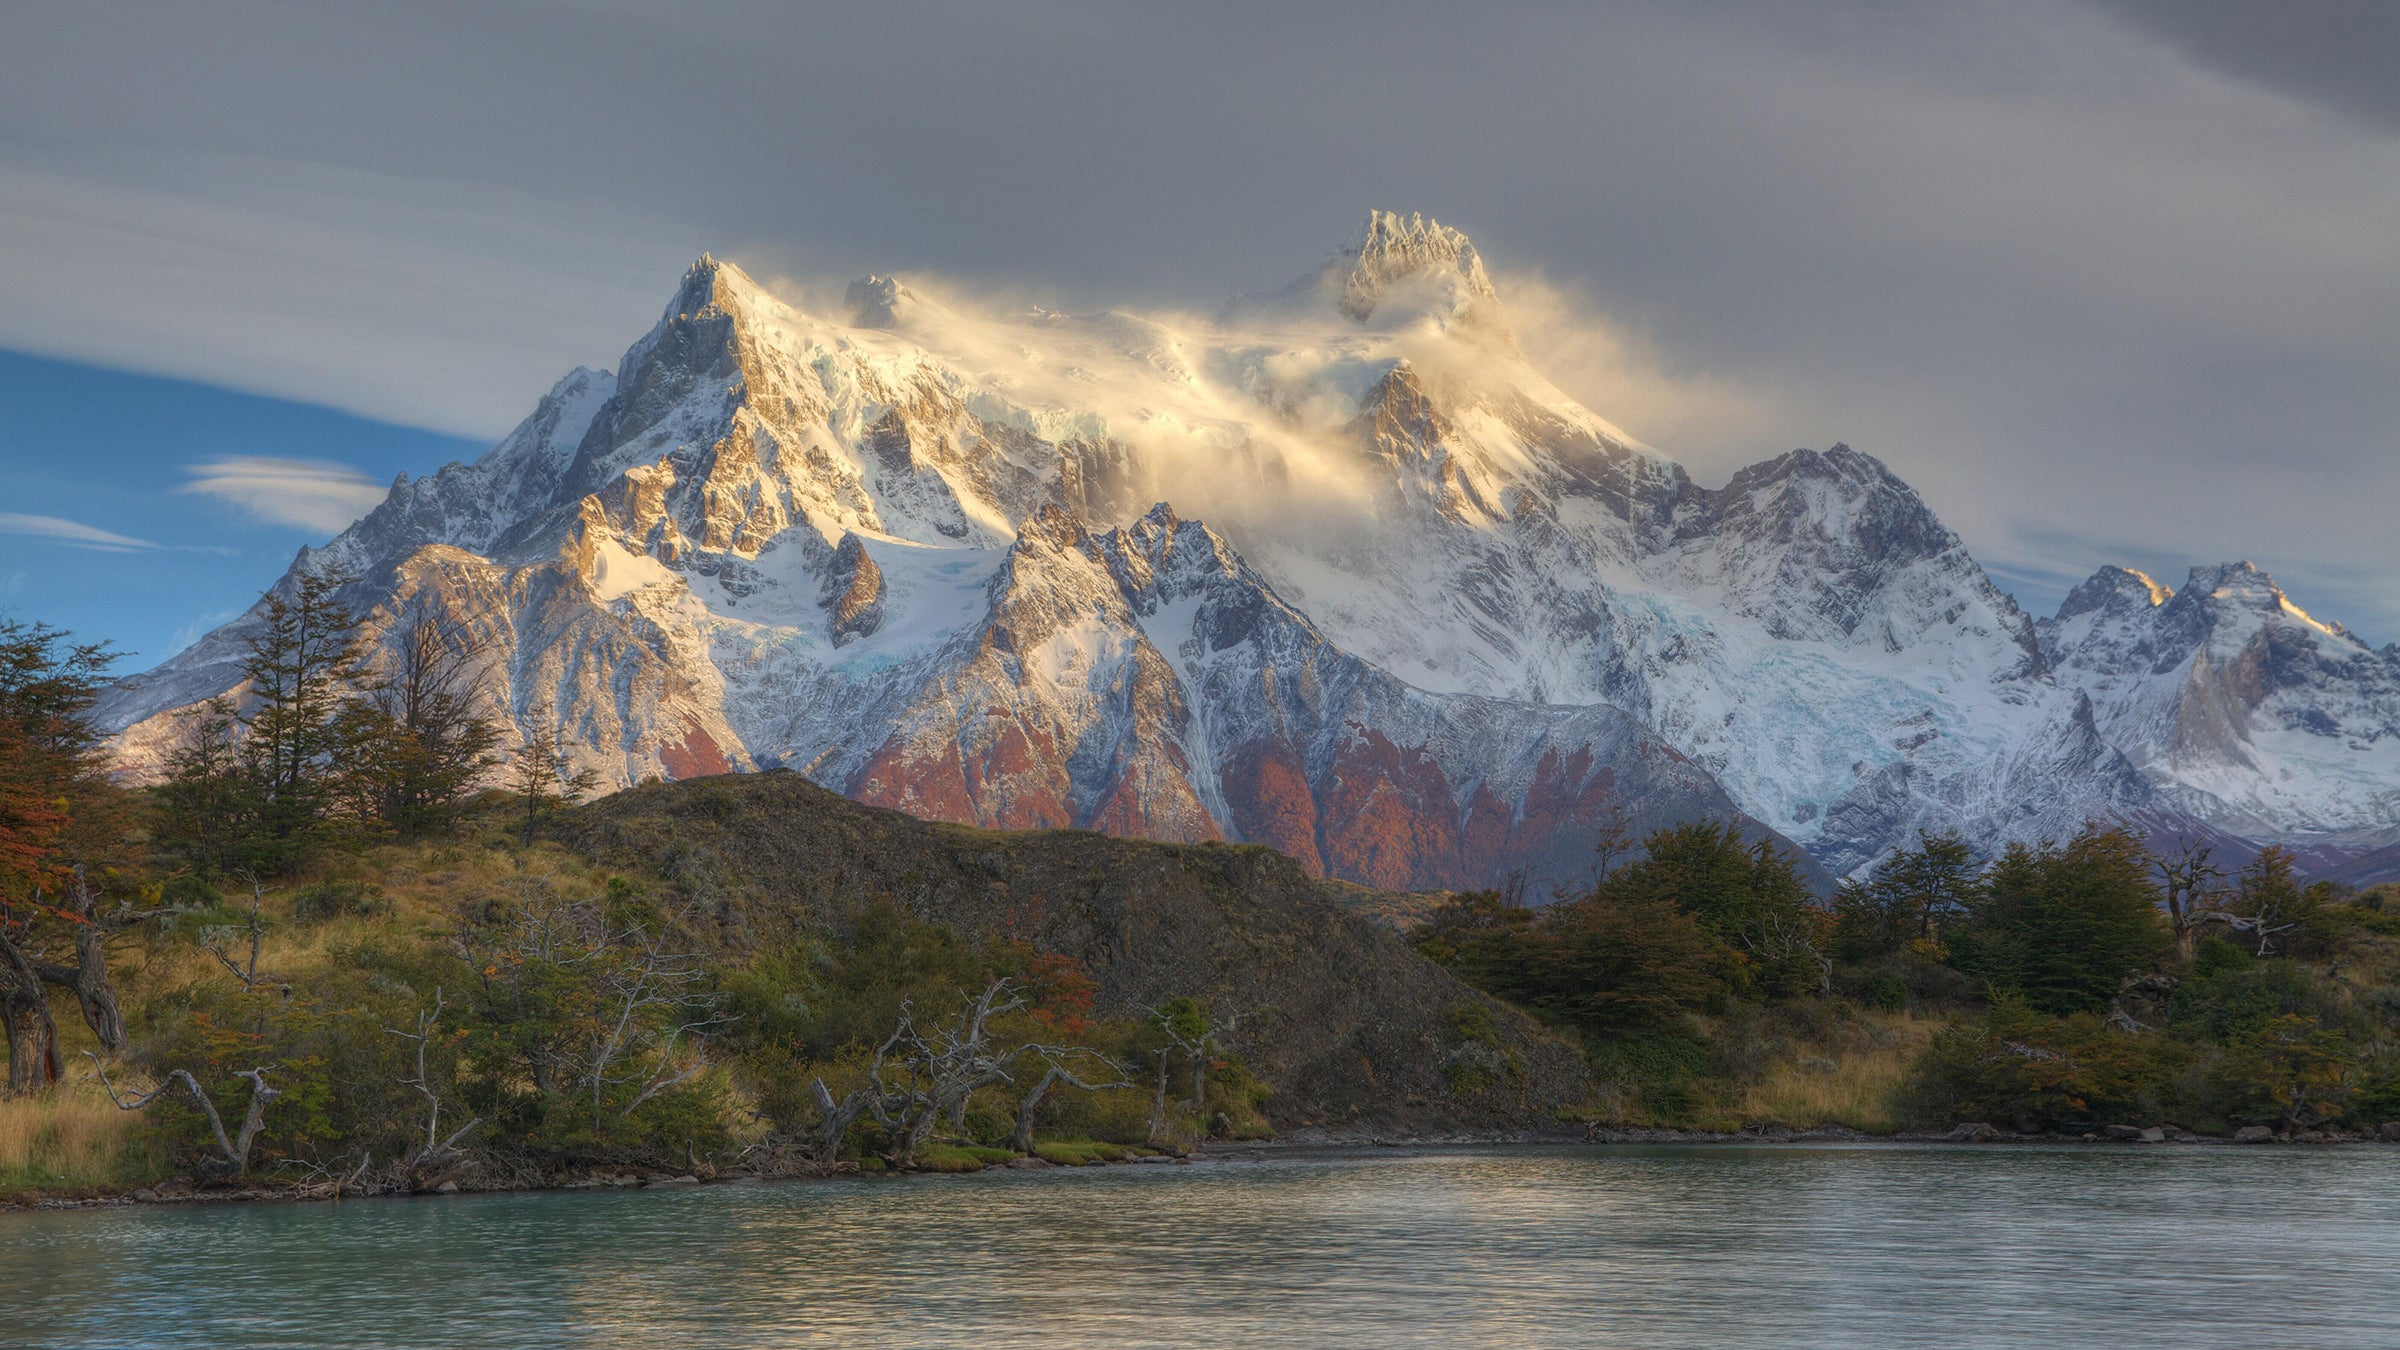 Chilean Patagonia's majestic mountains